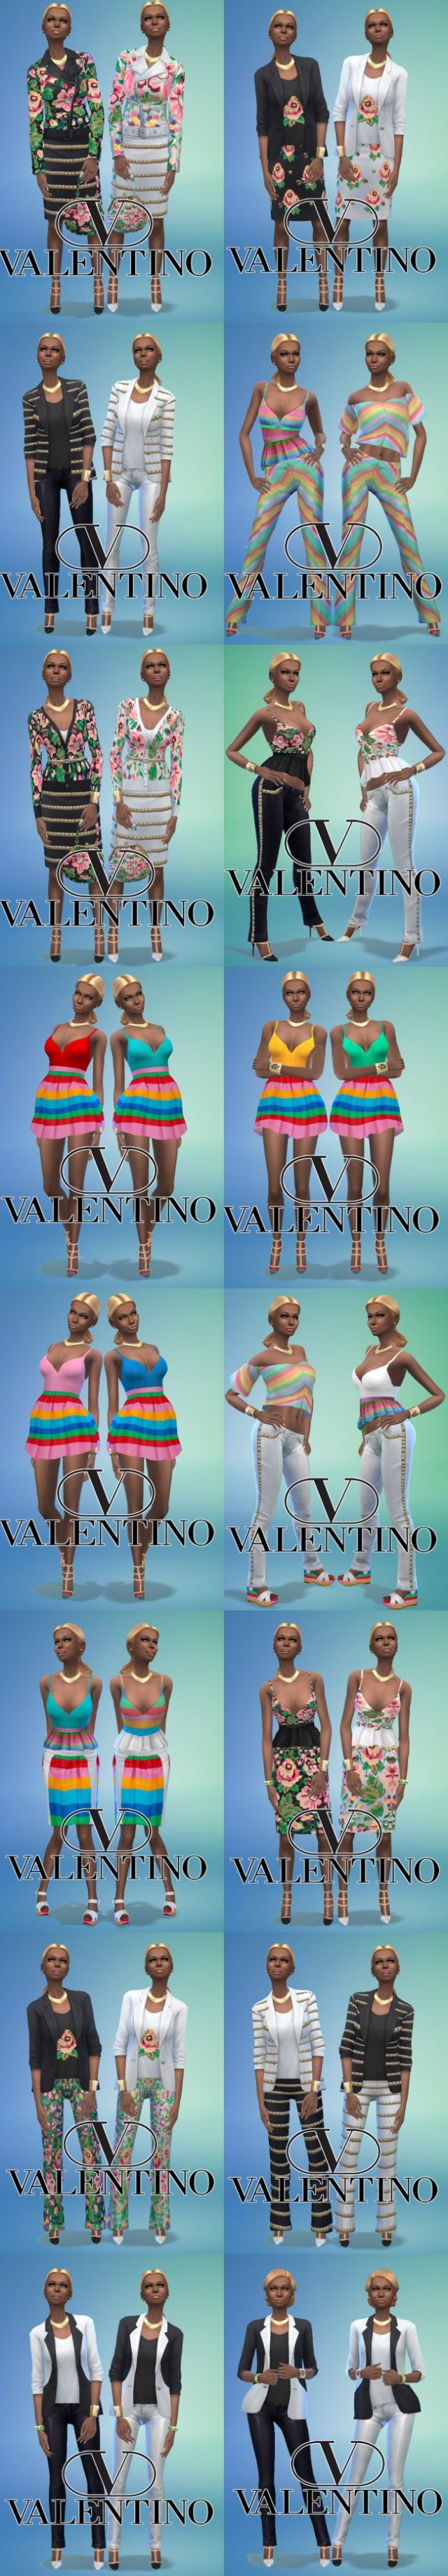 Valentino SS/15 Collection by Jean